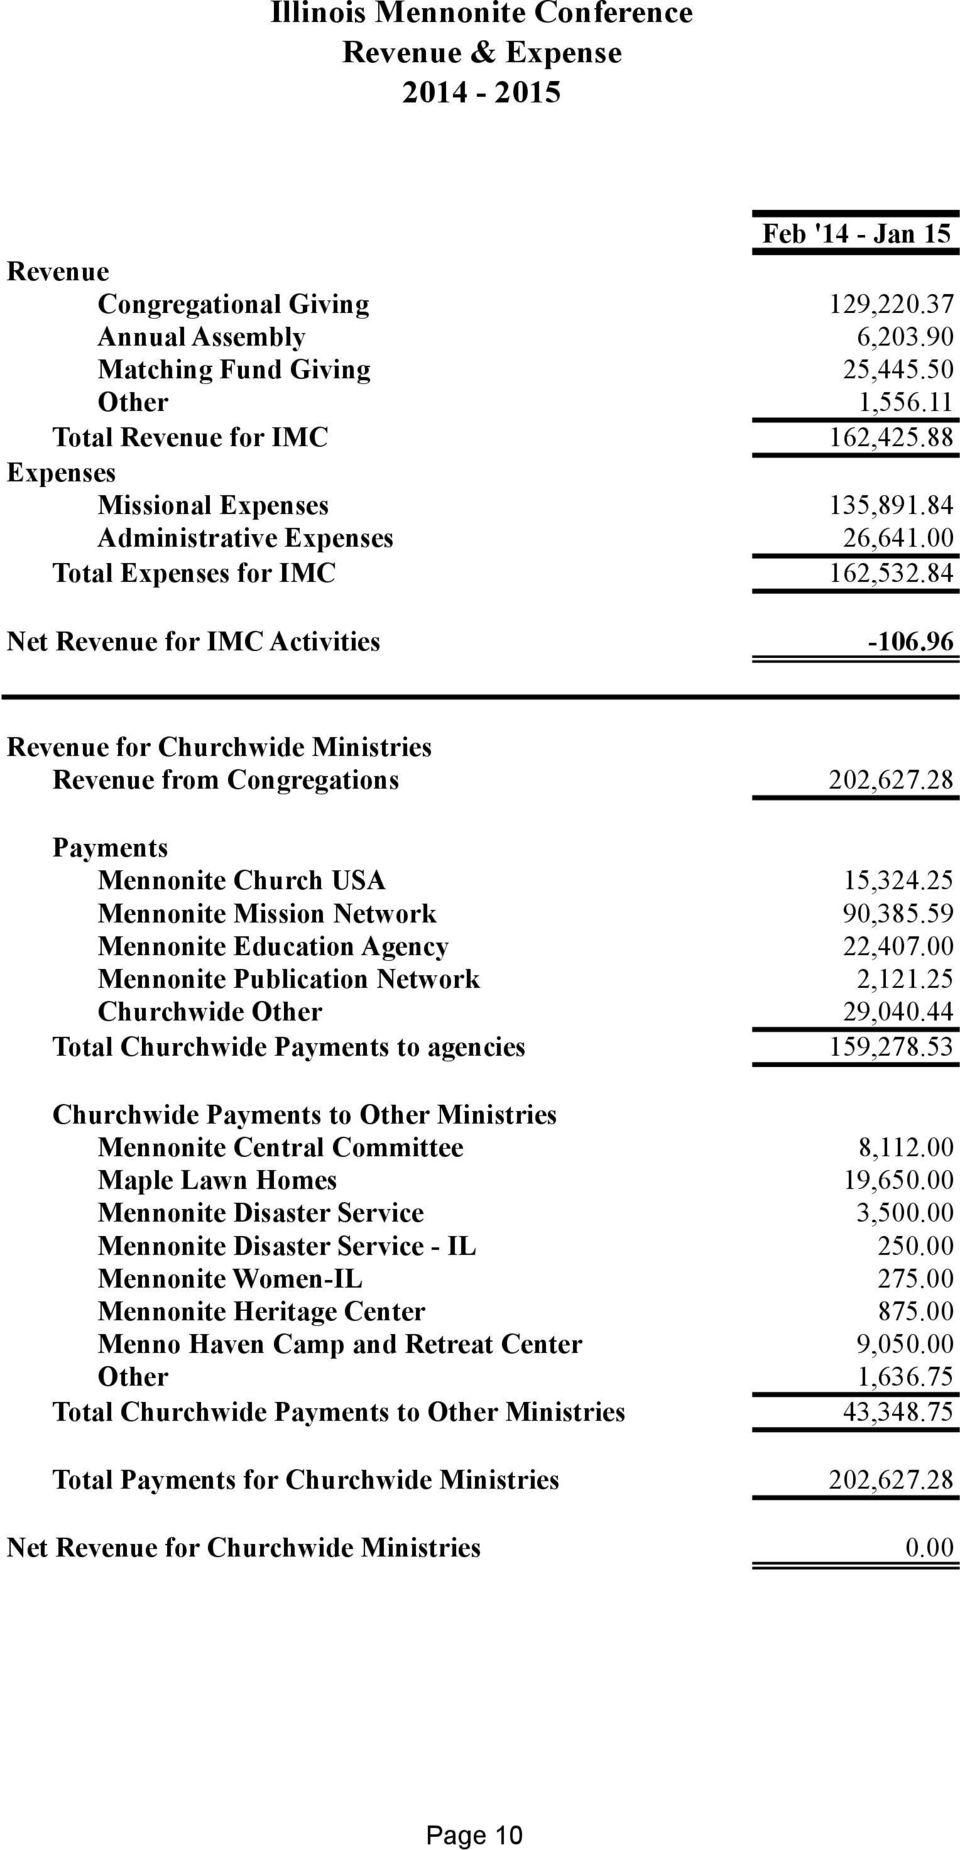 96 Revenue for Churchwide Ministries Revenue from Congregations 202,627.28 Payments Mennonite Church USA 15,324.25 Mennonite Mission Network 90,385.59 Mennonite Education Agency 22,407.